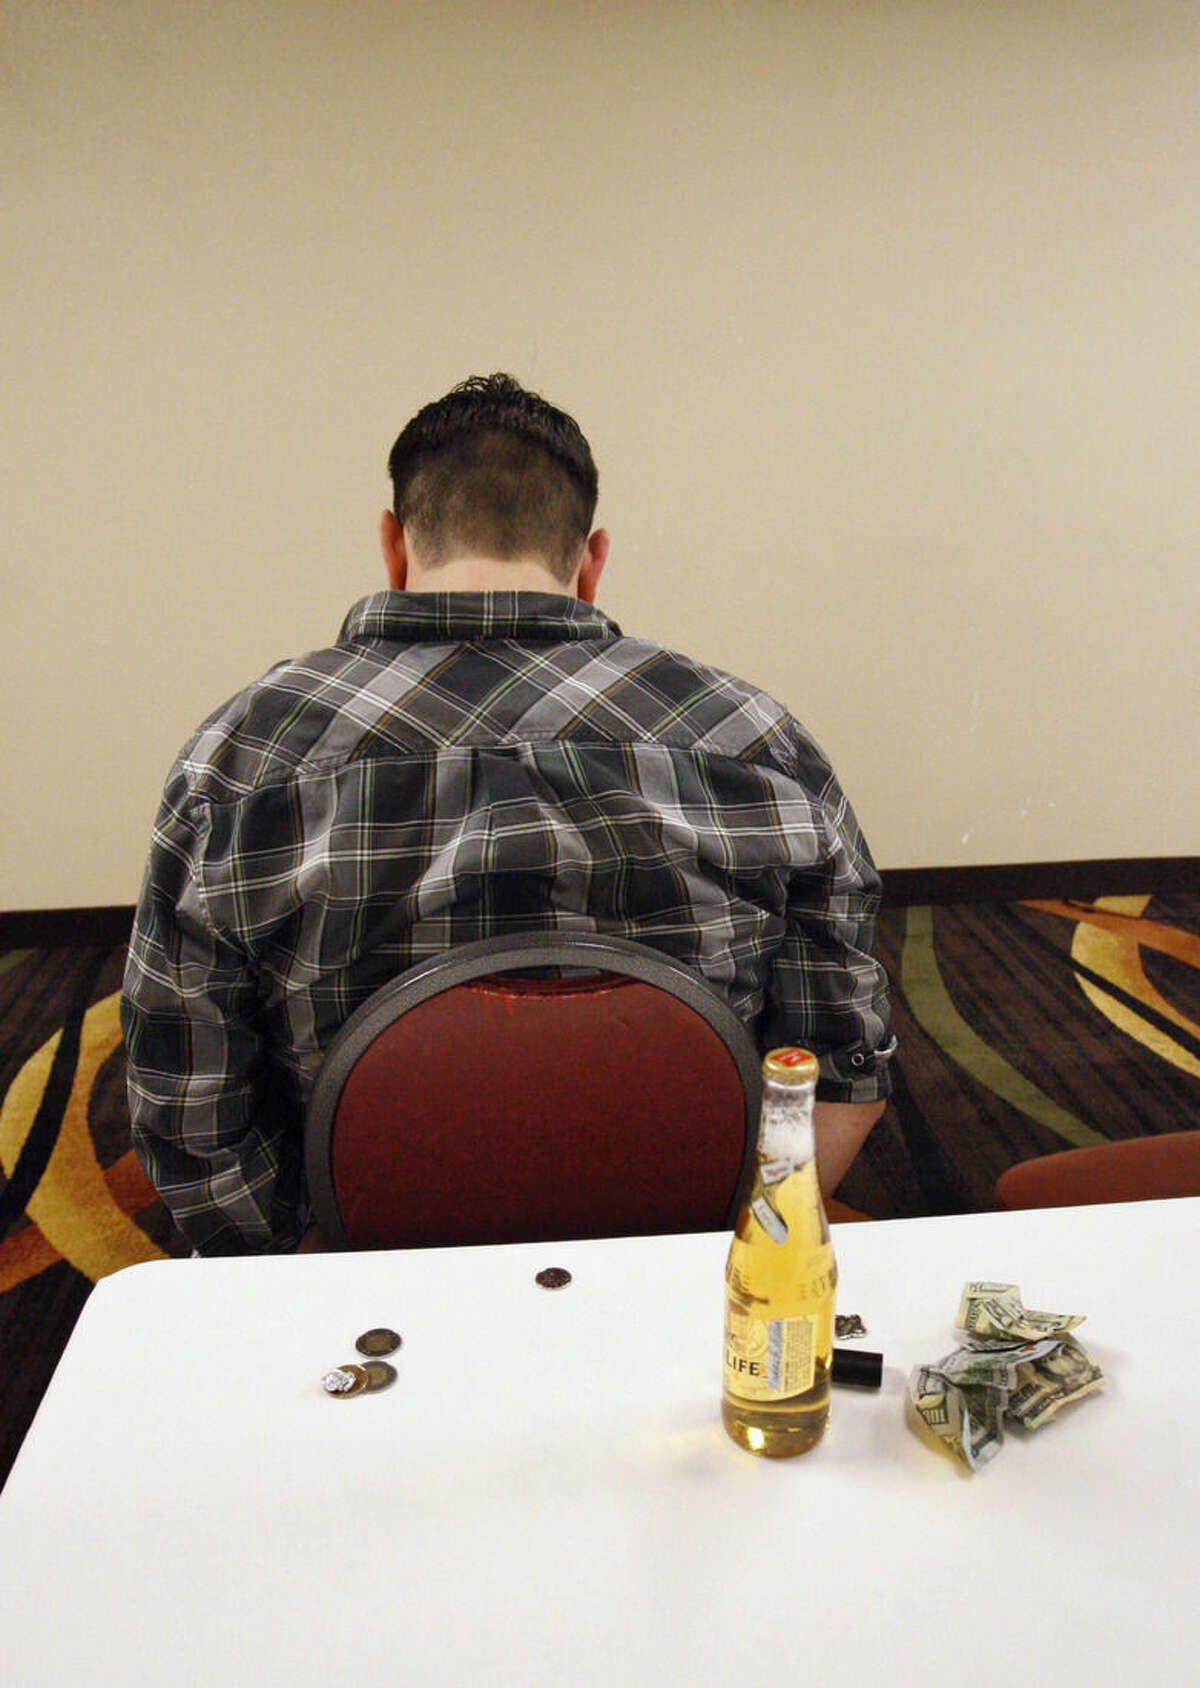 ADVANCE FOR USE MONDAY, MARCH 9, 2014 AND THEREAFTER - With a beer he had in his back pocket on a table with other posessions, a man arrested for prostitution solicitation waits to be booked at a hotel in Minot, N.D., in the early morning hours of Saturday, Jan. 31, 2015. Sex trafficking has become a big problem in North Dakota amid an oil boom that has brought in money and oil workers. The Minot police sting ended with the arrests of 13 men, who answered ads on an escort website posted by the undercover officers. (AP Photo/Martha Irvine)